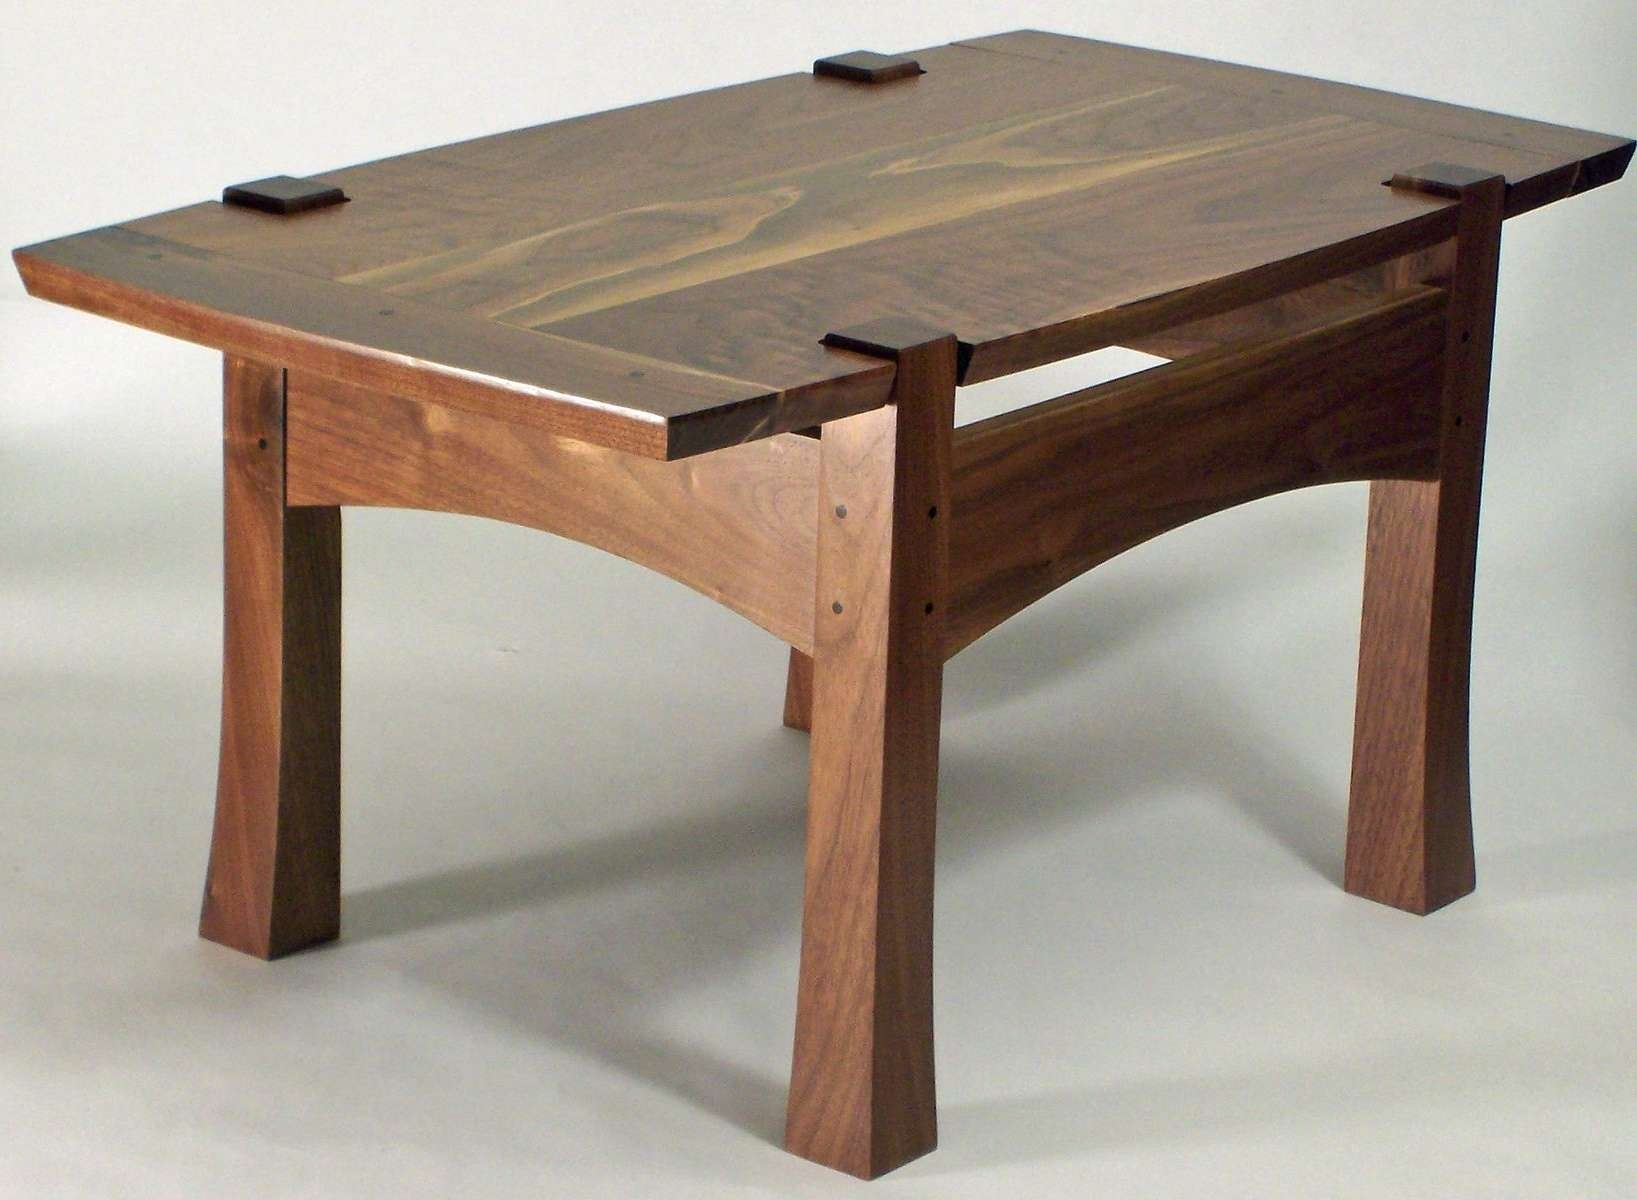 Buy A Custom Made Asian Inspired Side Table, Made To Order From Regarding Well Known Asian Coffee Tables (View 13 of 20)